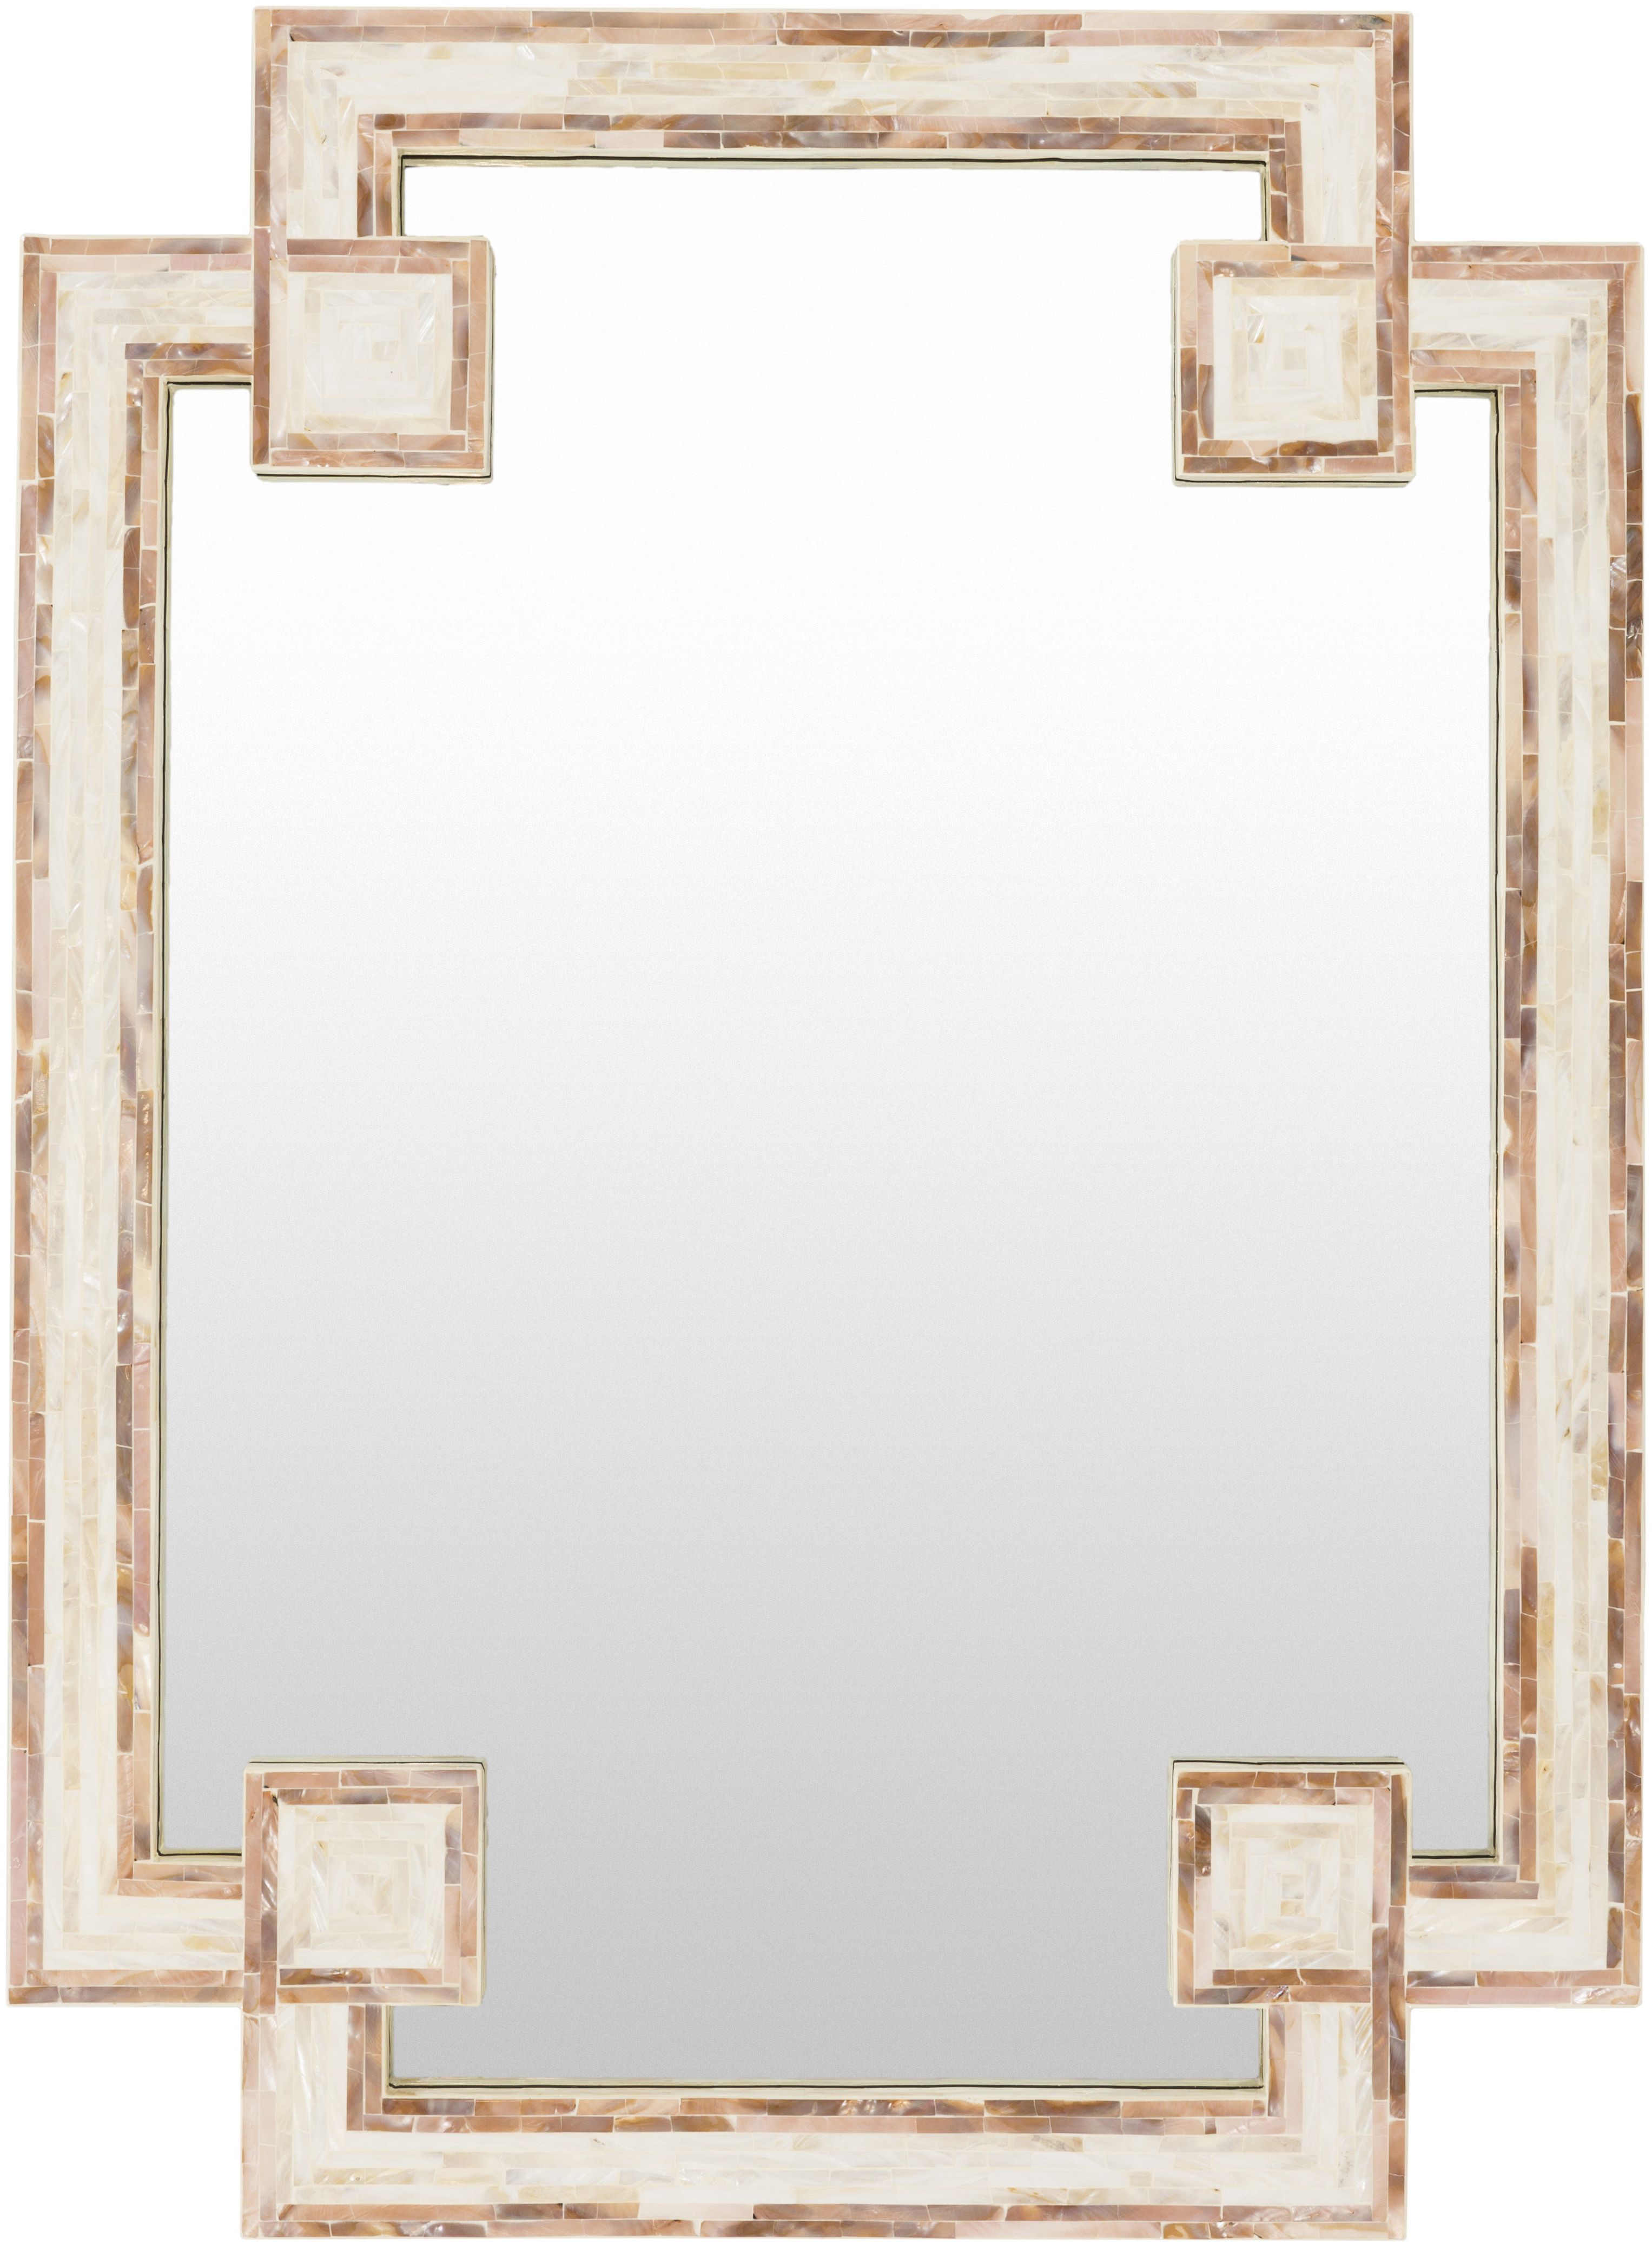 Latrell Modern & Contemporary Wall Mirror Pertaining To Popular Astrid Modern & Contemporary Accent Mirrors (View 8 of 20)